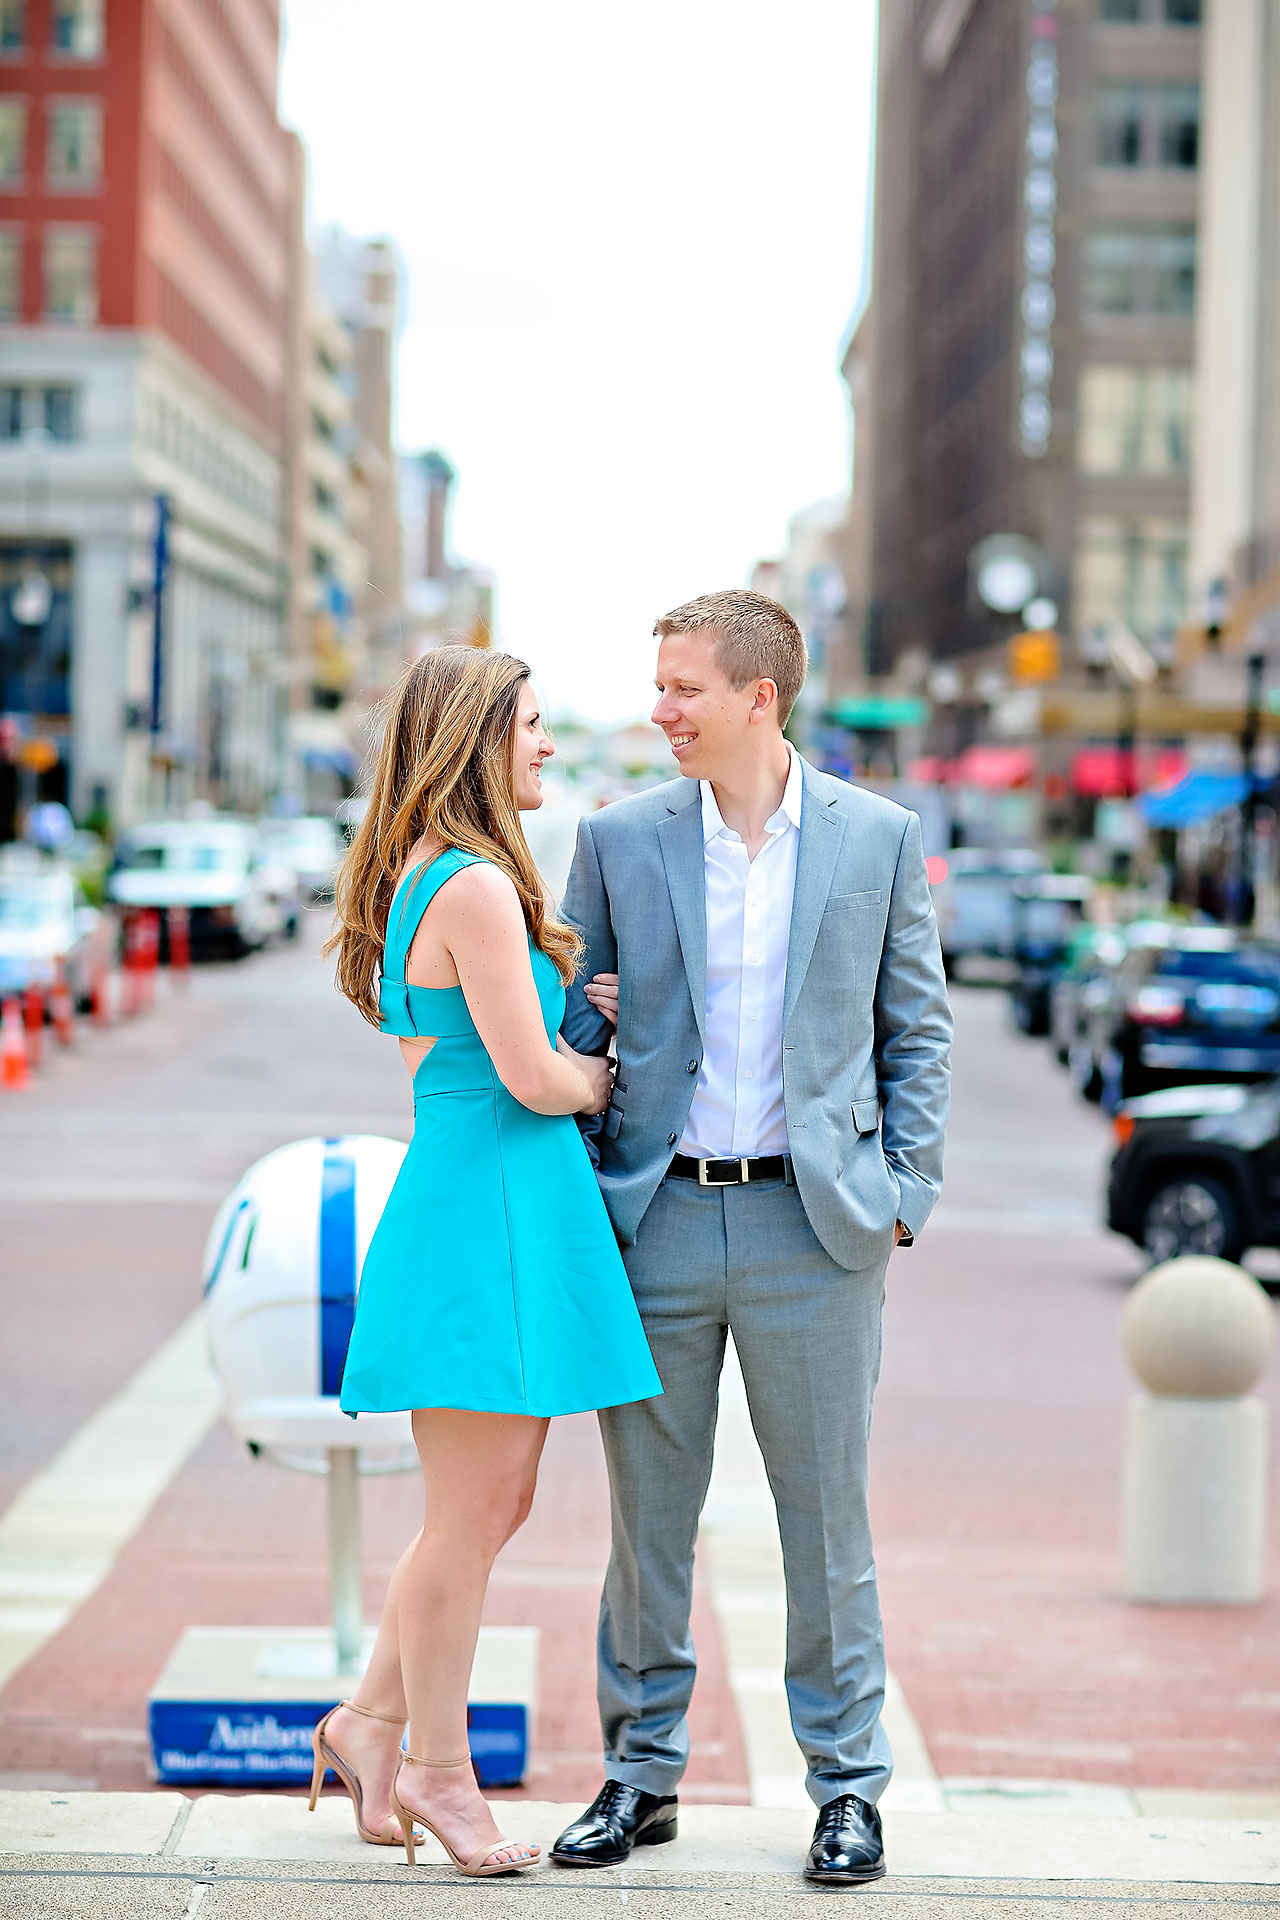 Chelsea Jeff Downtown Indy Engagement Session 034